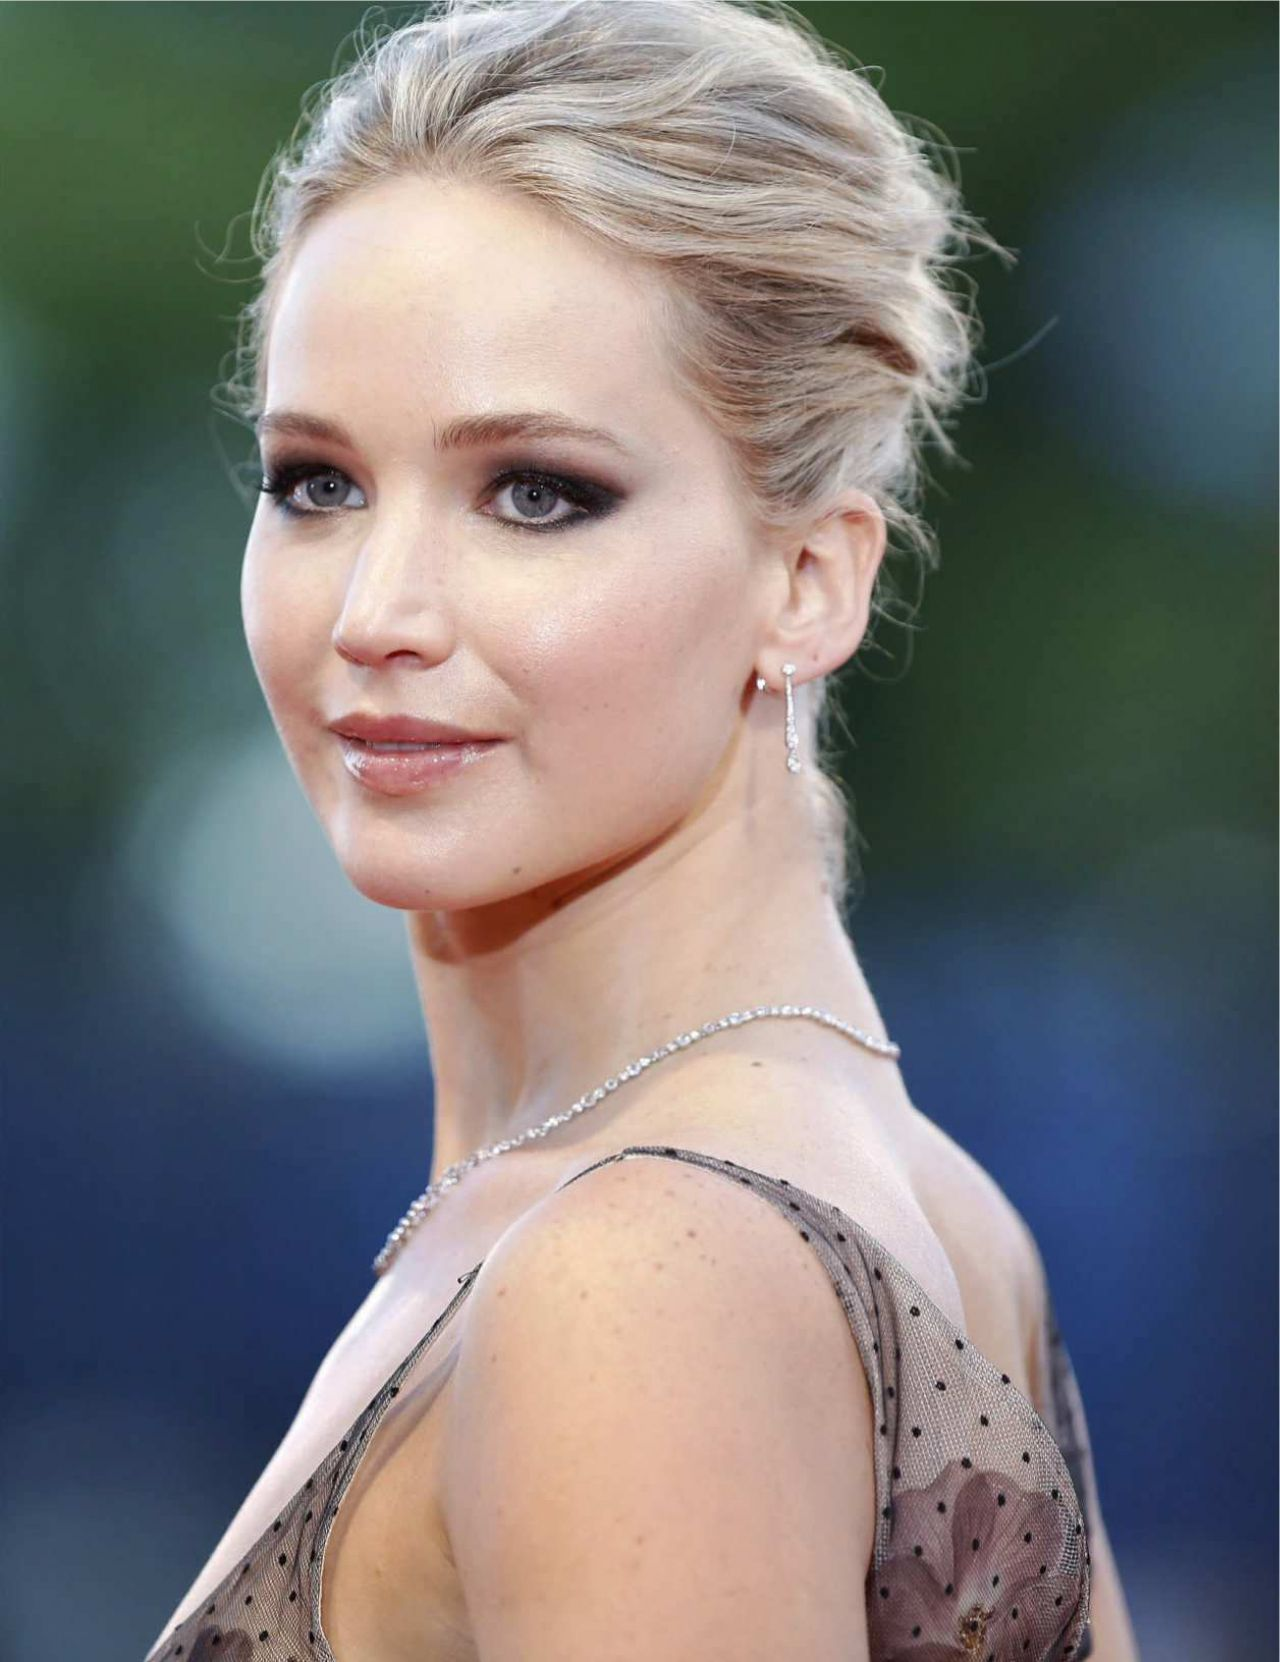 Jennifer lawrence photo leak